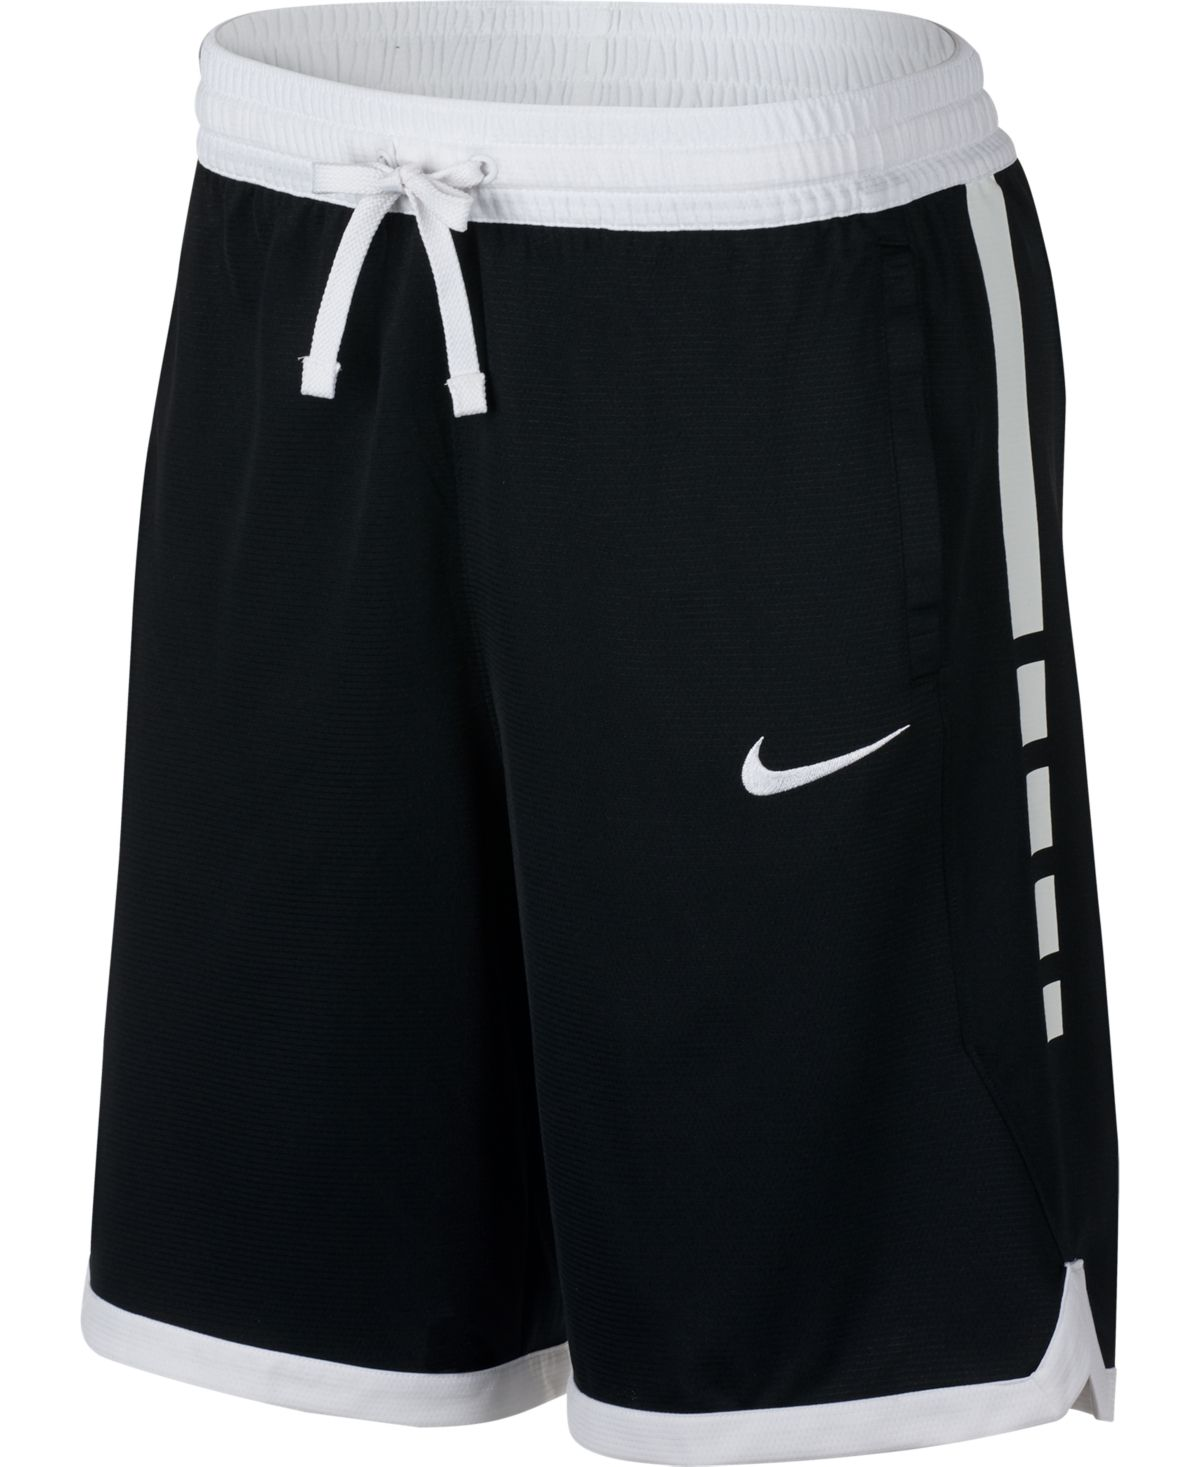 Nike Men S Dri Fit Elite Basketball Shorts Black White Basketball Clothes Womens Basketball Shorts Nike Basketball Shorts